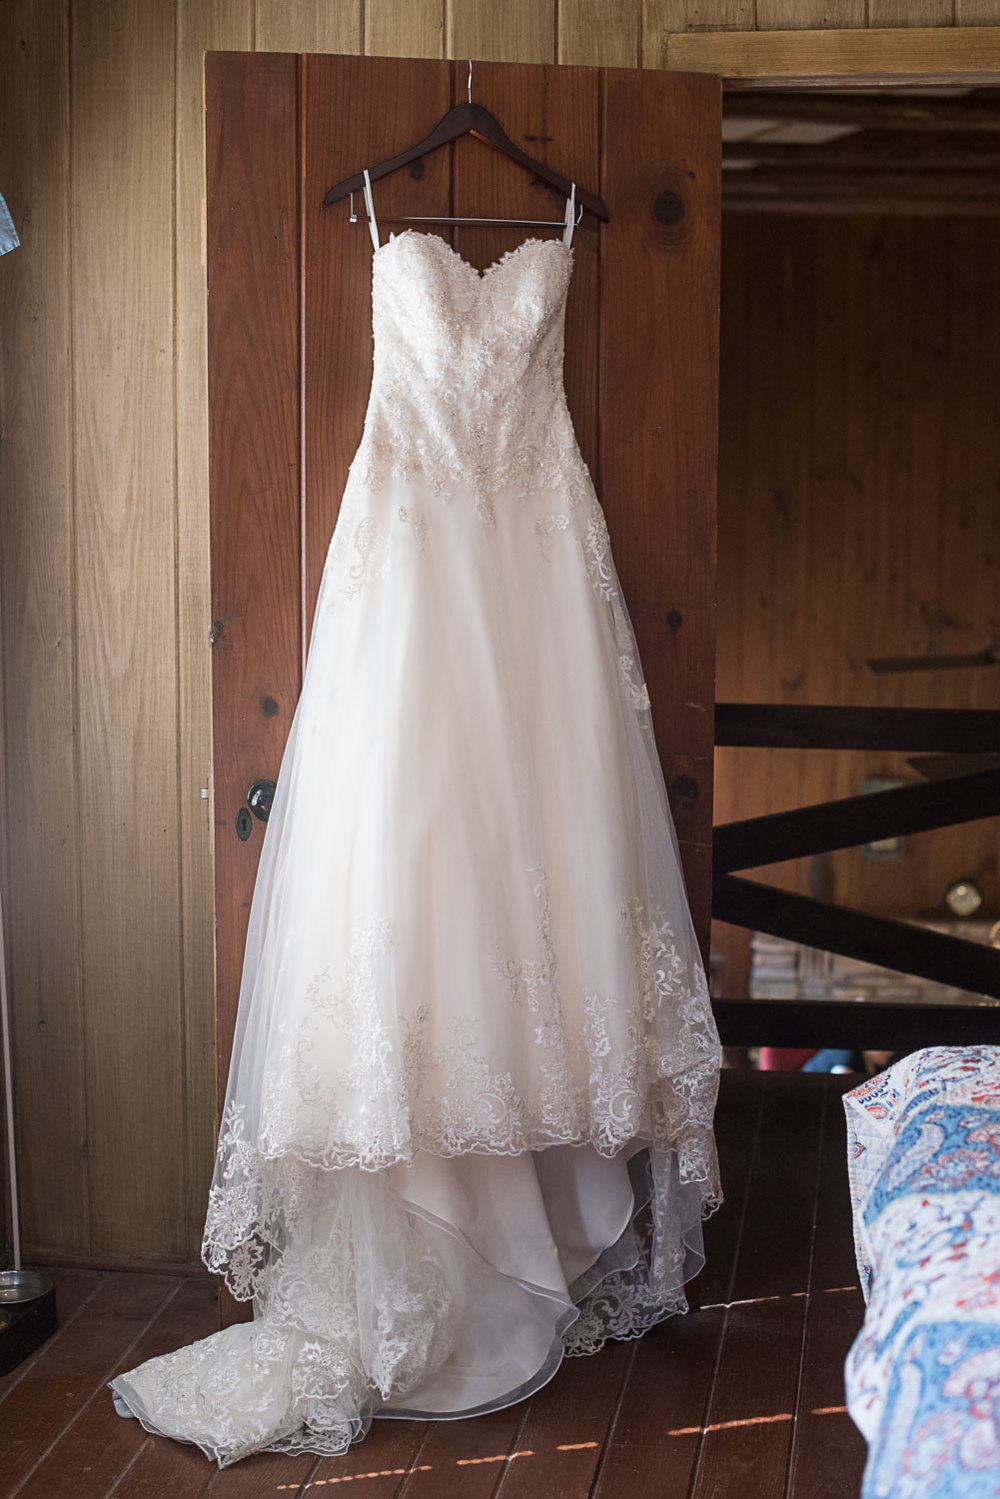 1 Wedding dress Hanging in doorway of family cabin.jpg